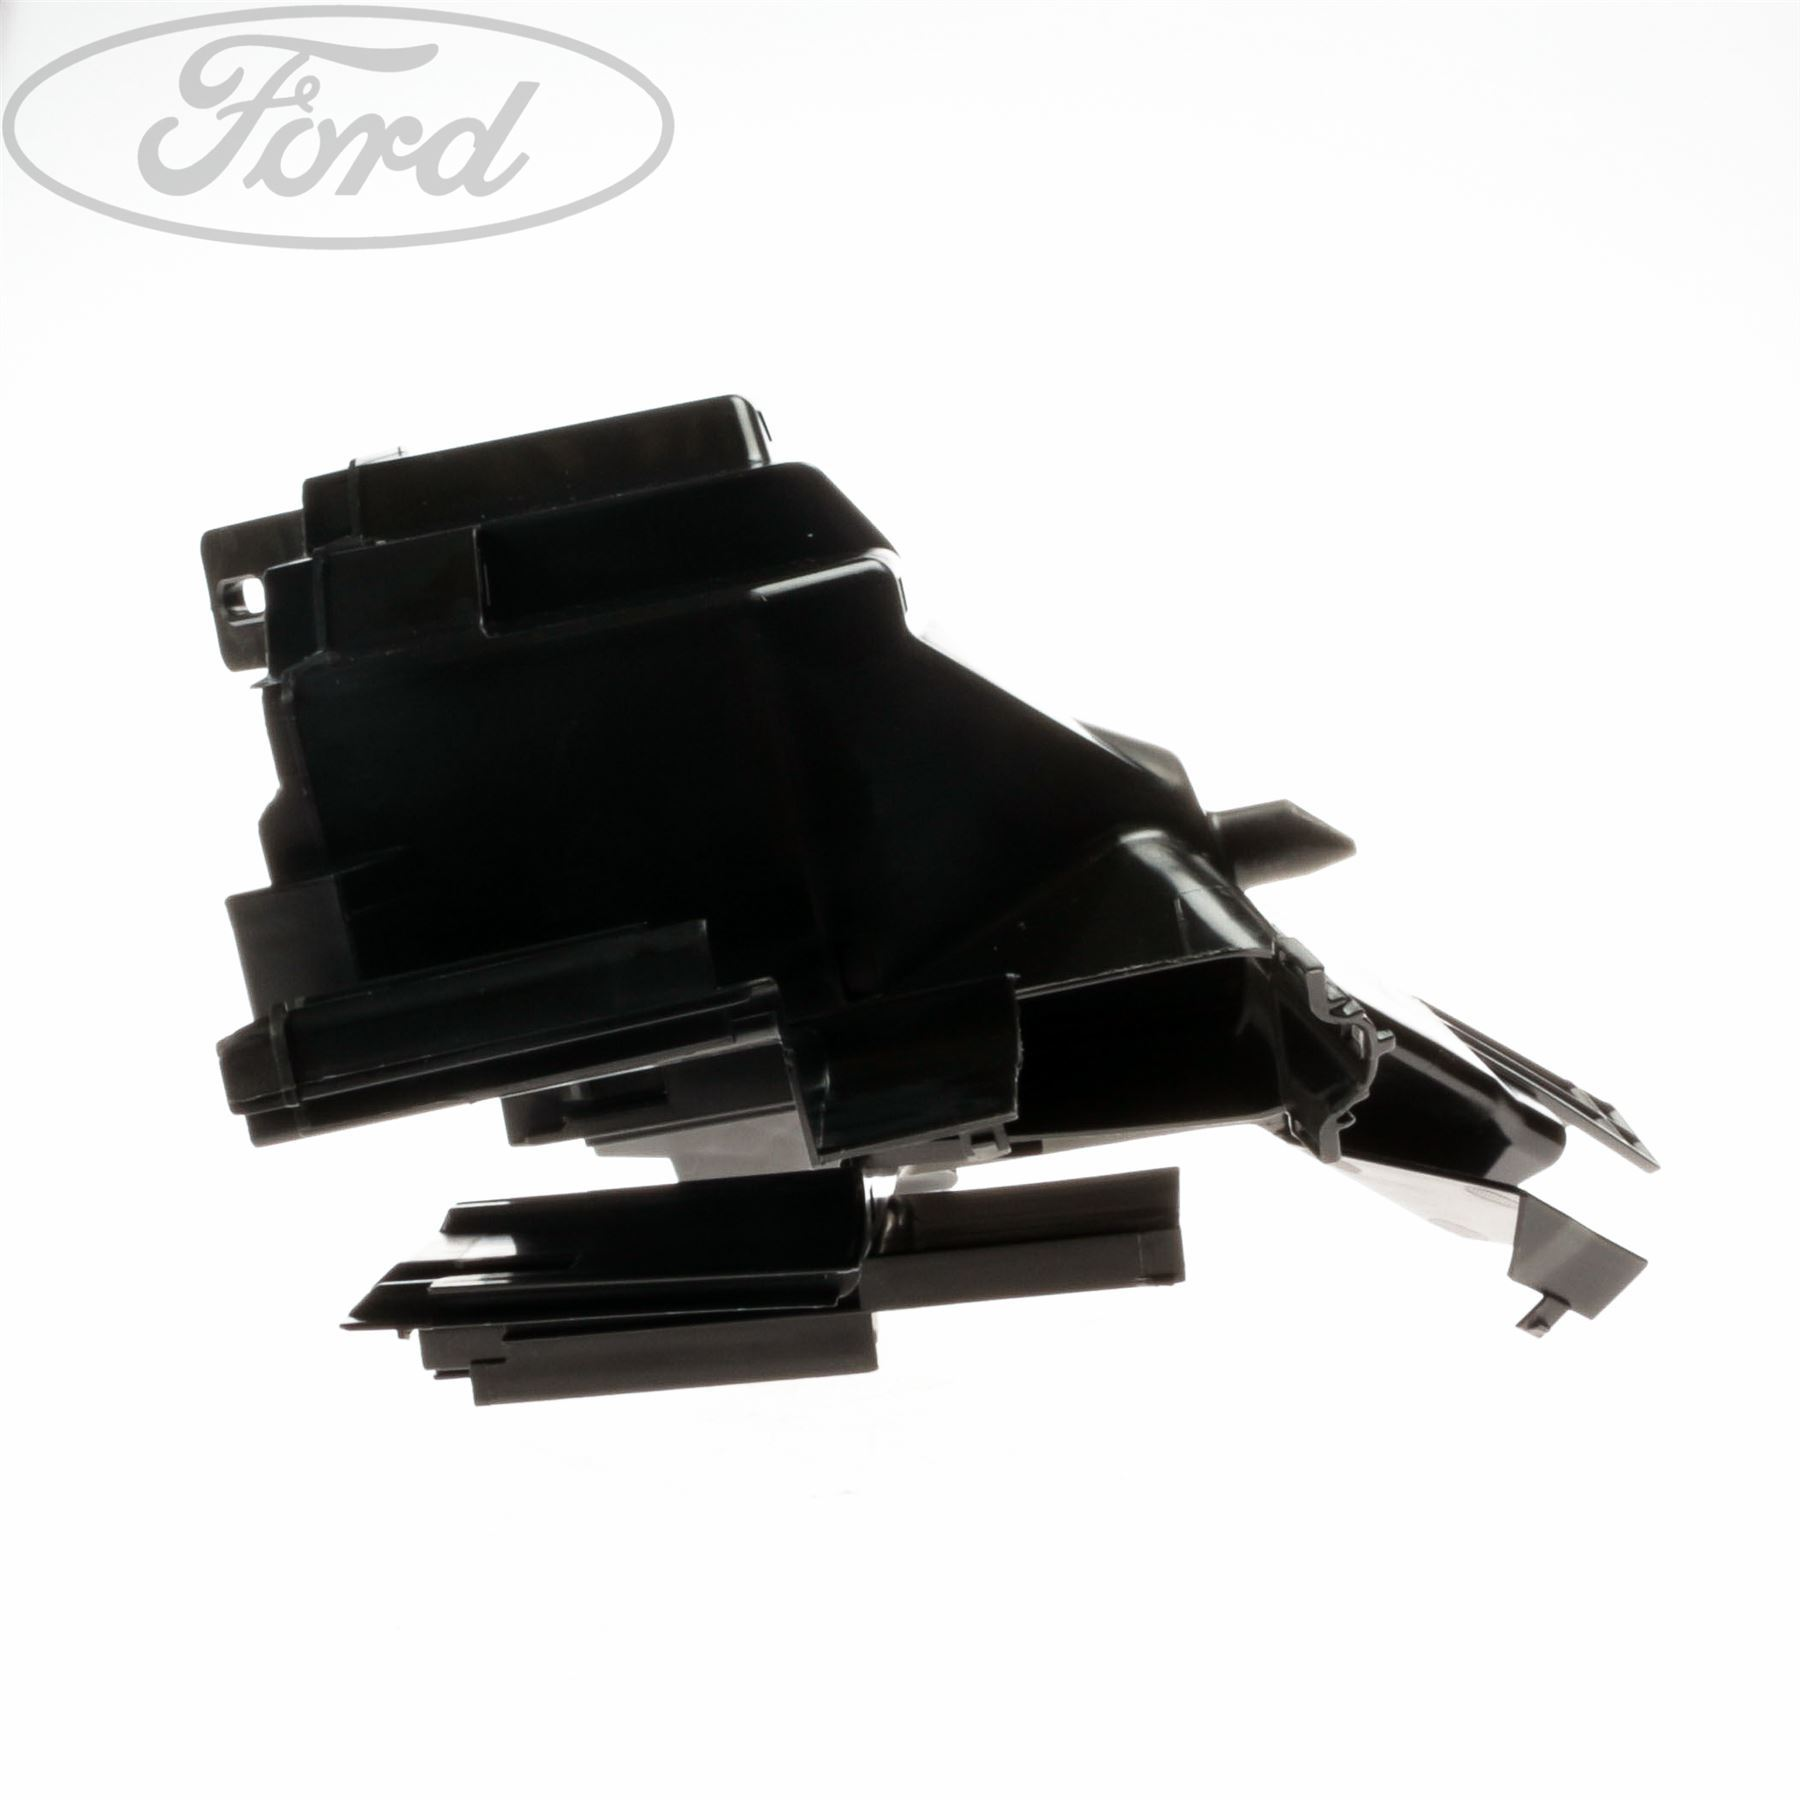 Genuine Ford Fiesta Mk7 Fuse Junction Panel Housing 1514684 Ebay Box Diagram